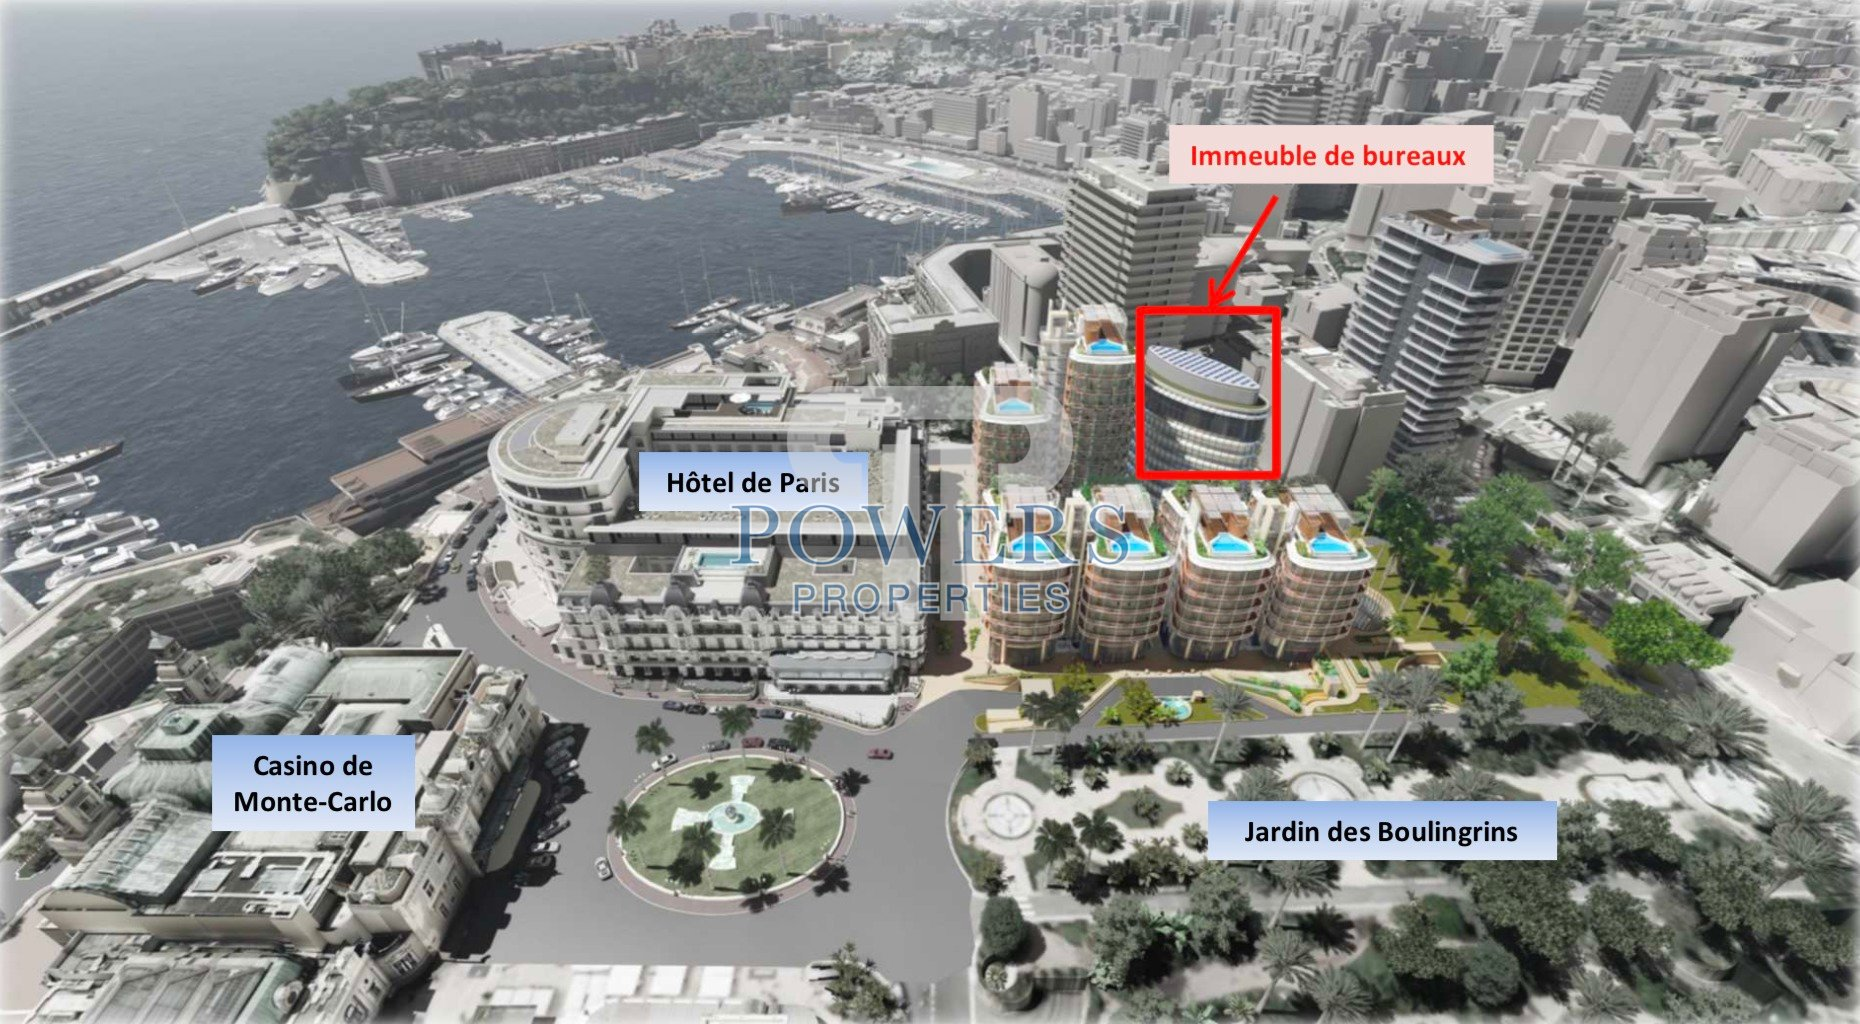 Location Powers Properties Agence Immobiliere Monaco Carr U00e9